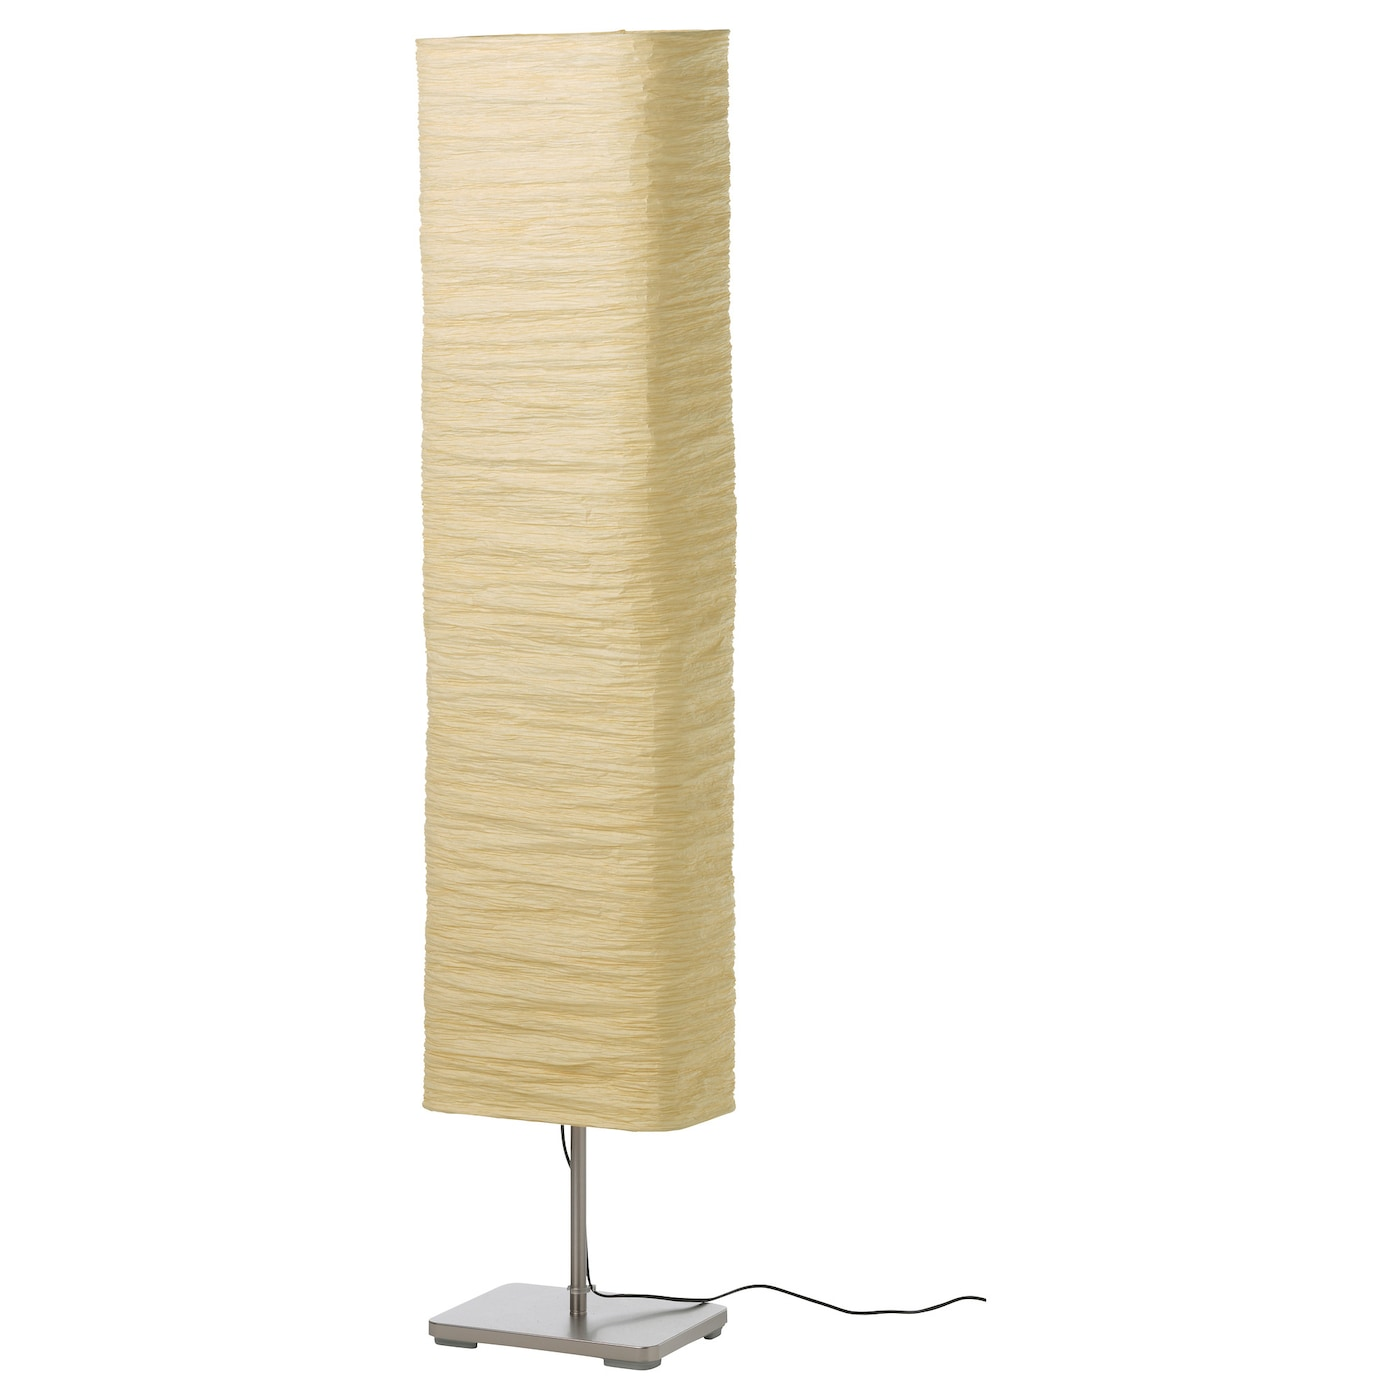 ikea magnarp floor lamp - Ikea Floor Lamp